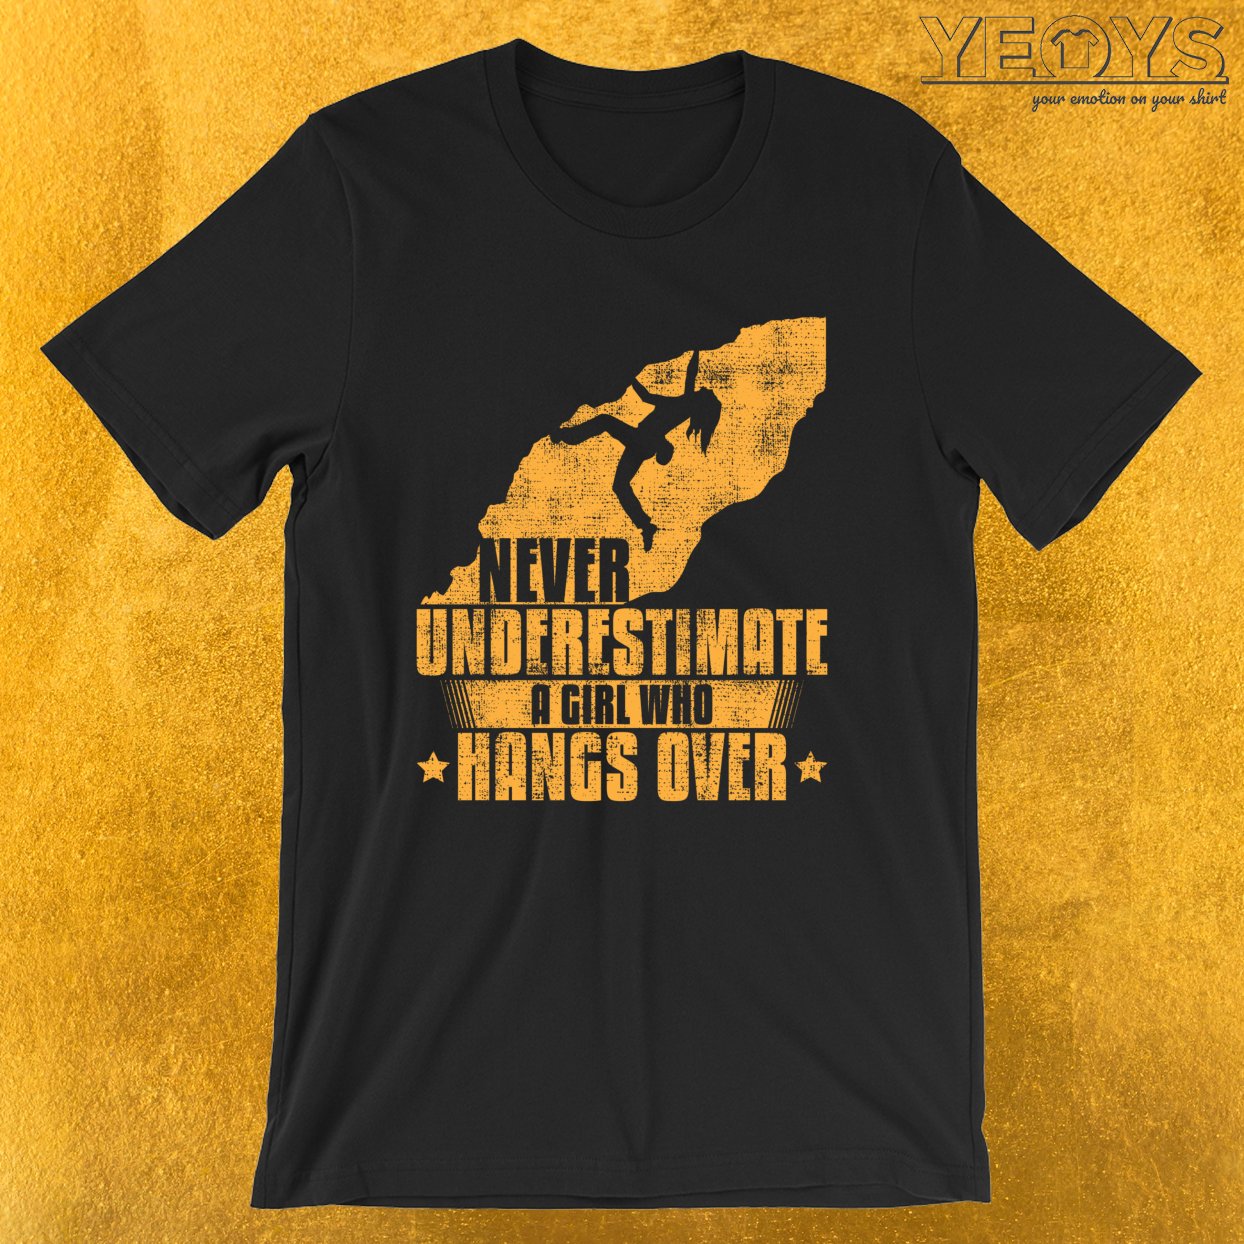 Never Underestimate A Girl Who Hangs Over – Girls Rock Climbing Tee